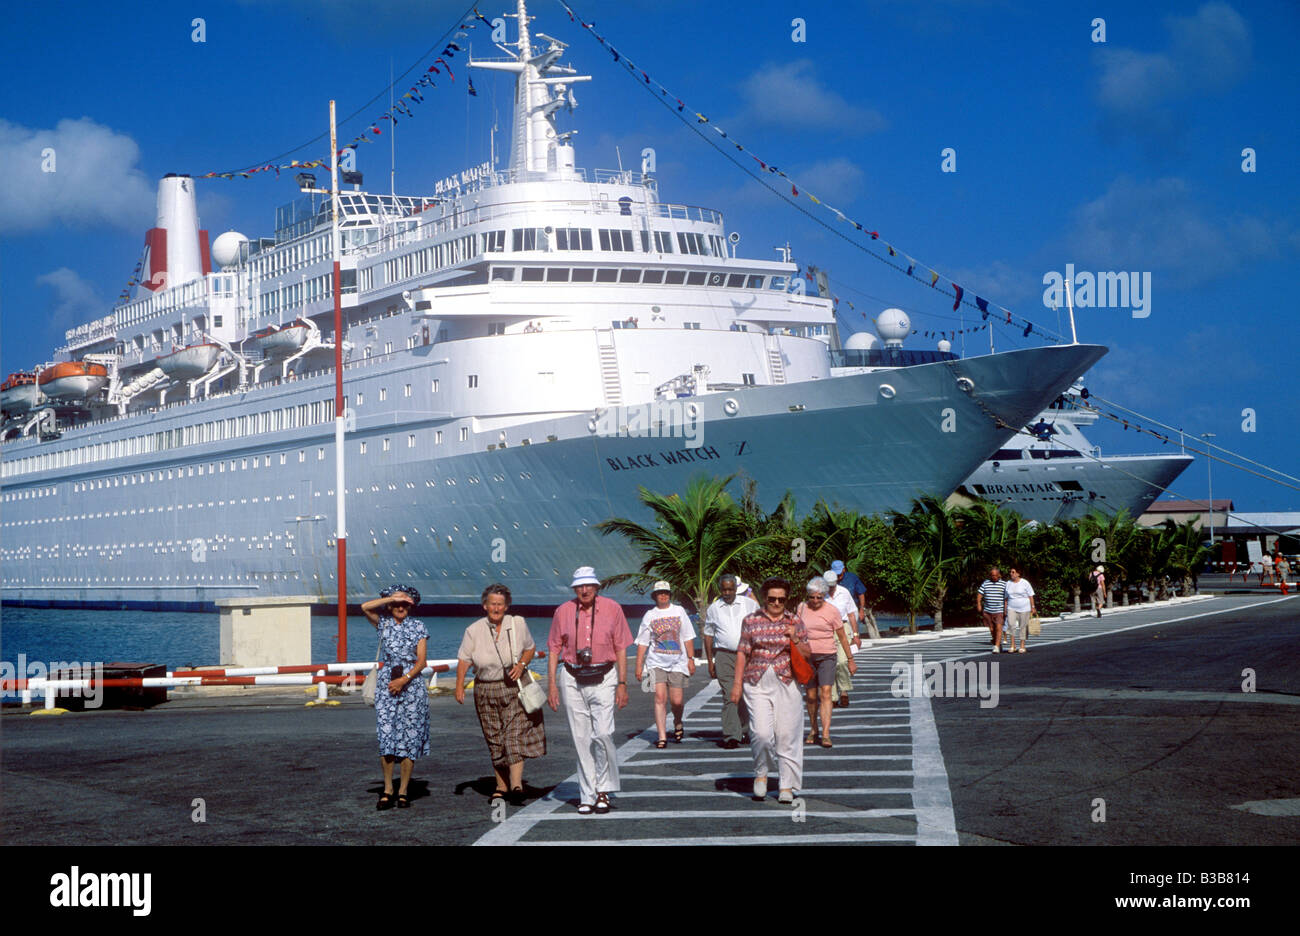 Cruise Ships In Port Of Oranjestad On The Island Of Aruba Stock - Cruise ships in aruba